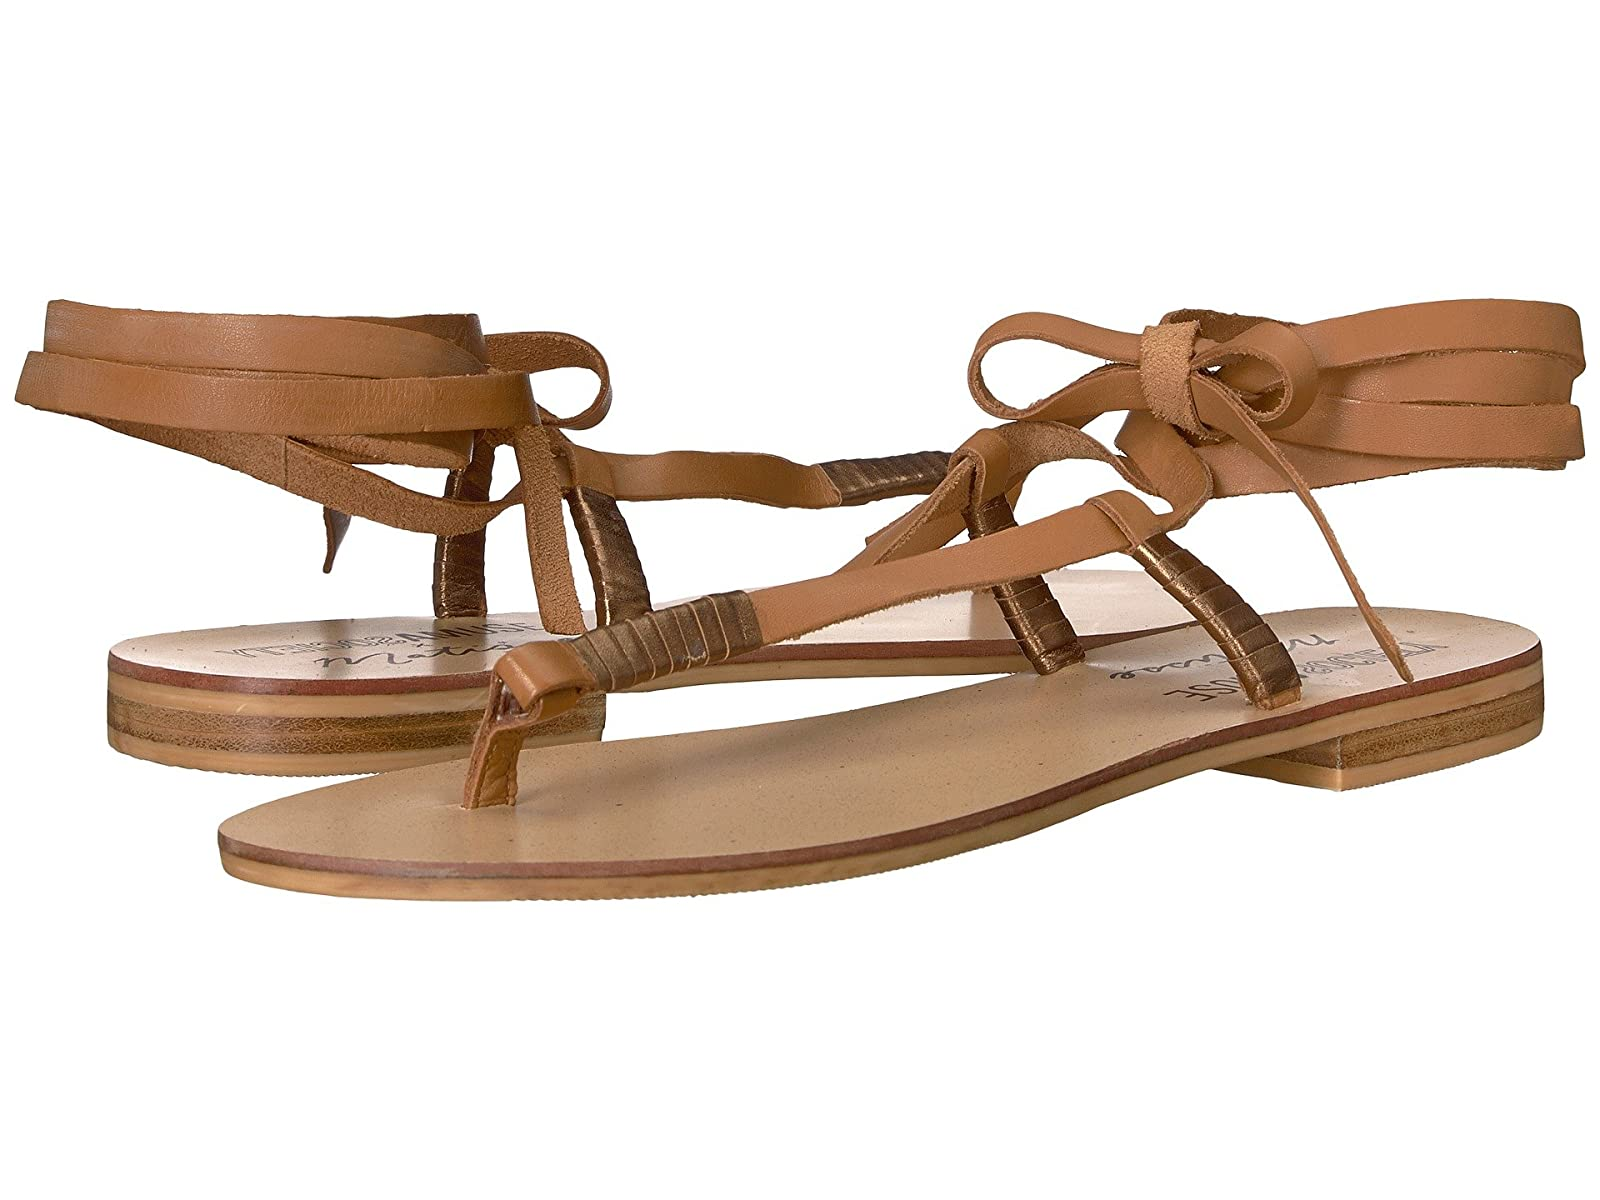 Matisse Matisse x Amuse Society - PositanoAtmospheric grades have affordable shoes